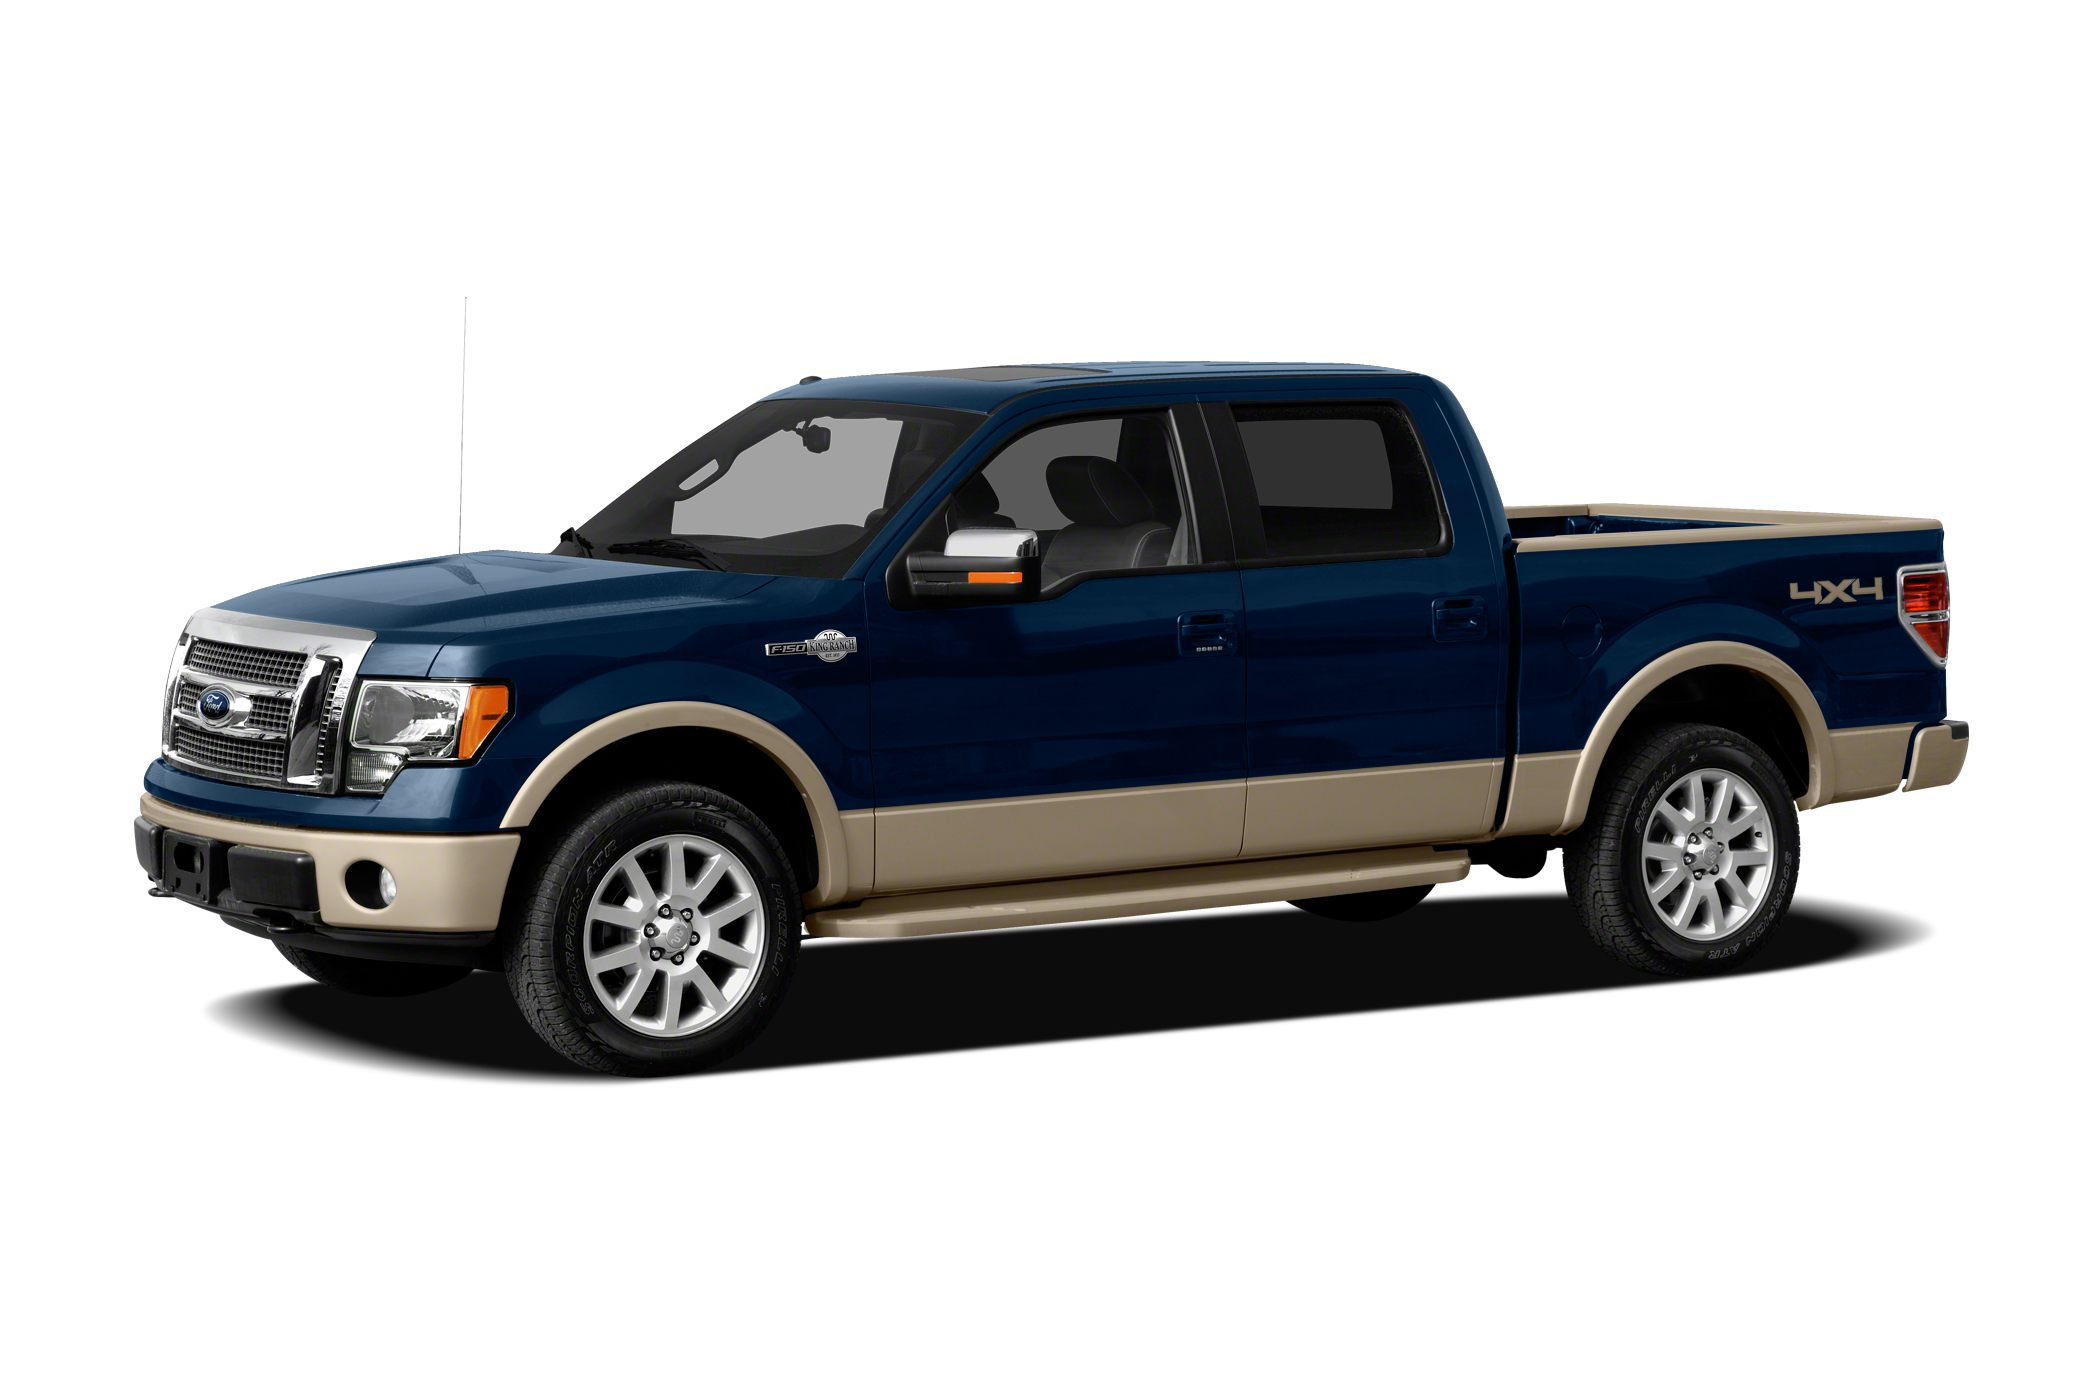 2012 Ford F150 King Ranch Crew Cab Pickup for sale in Rantoul for $29,995 with 86,828 miles